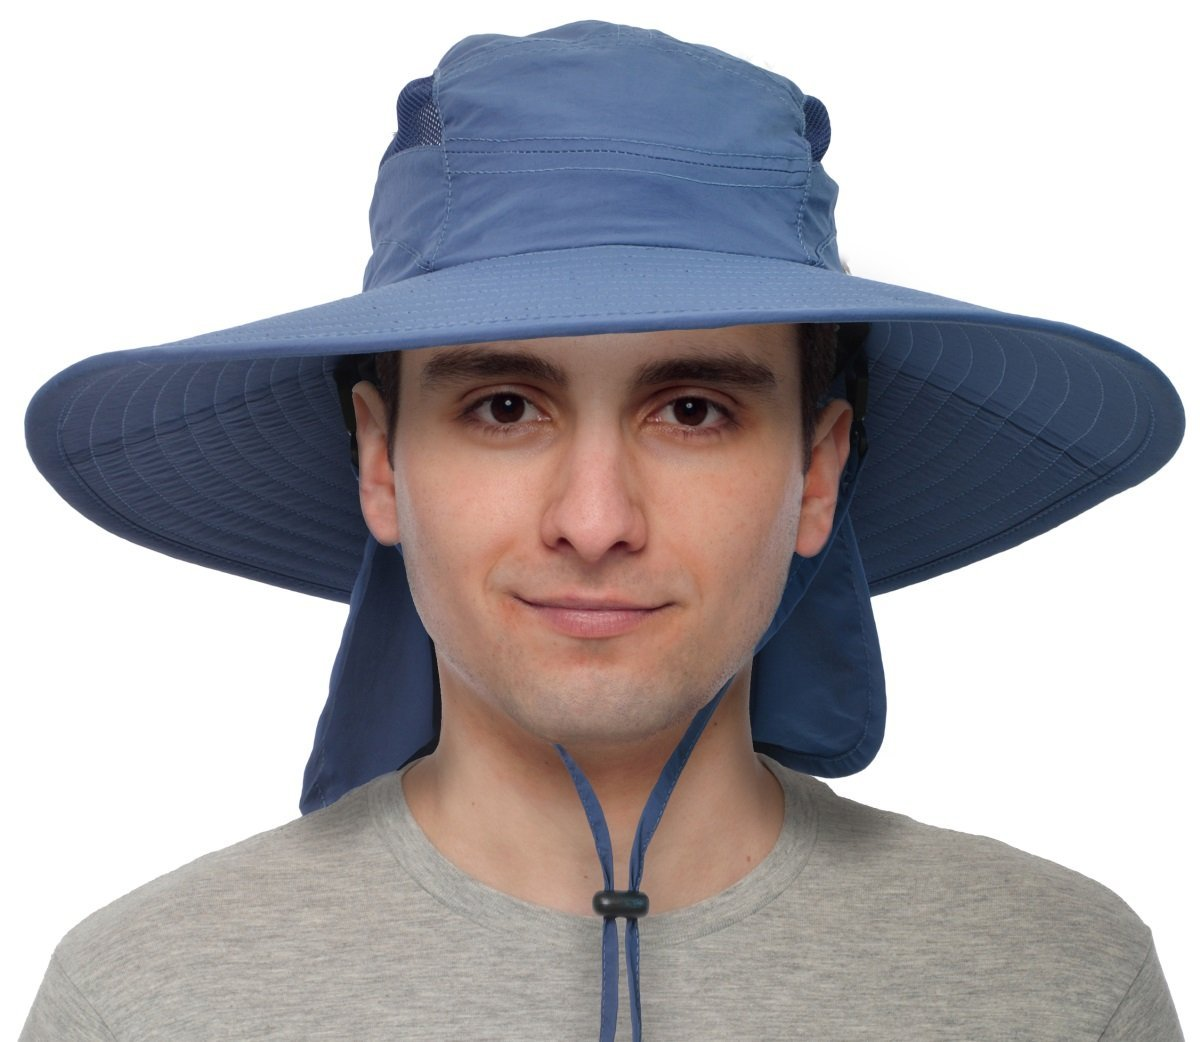 6c1ab7c4e48 Get Quotations · Solaris Fishing Cap UV Sun Protection Wide Brim Hat with  Removable Bill Neck Flap for Men